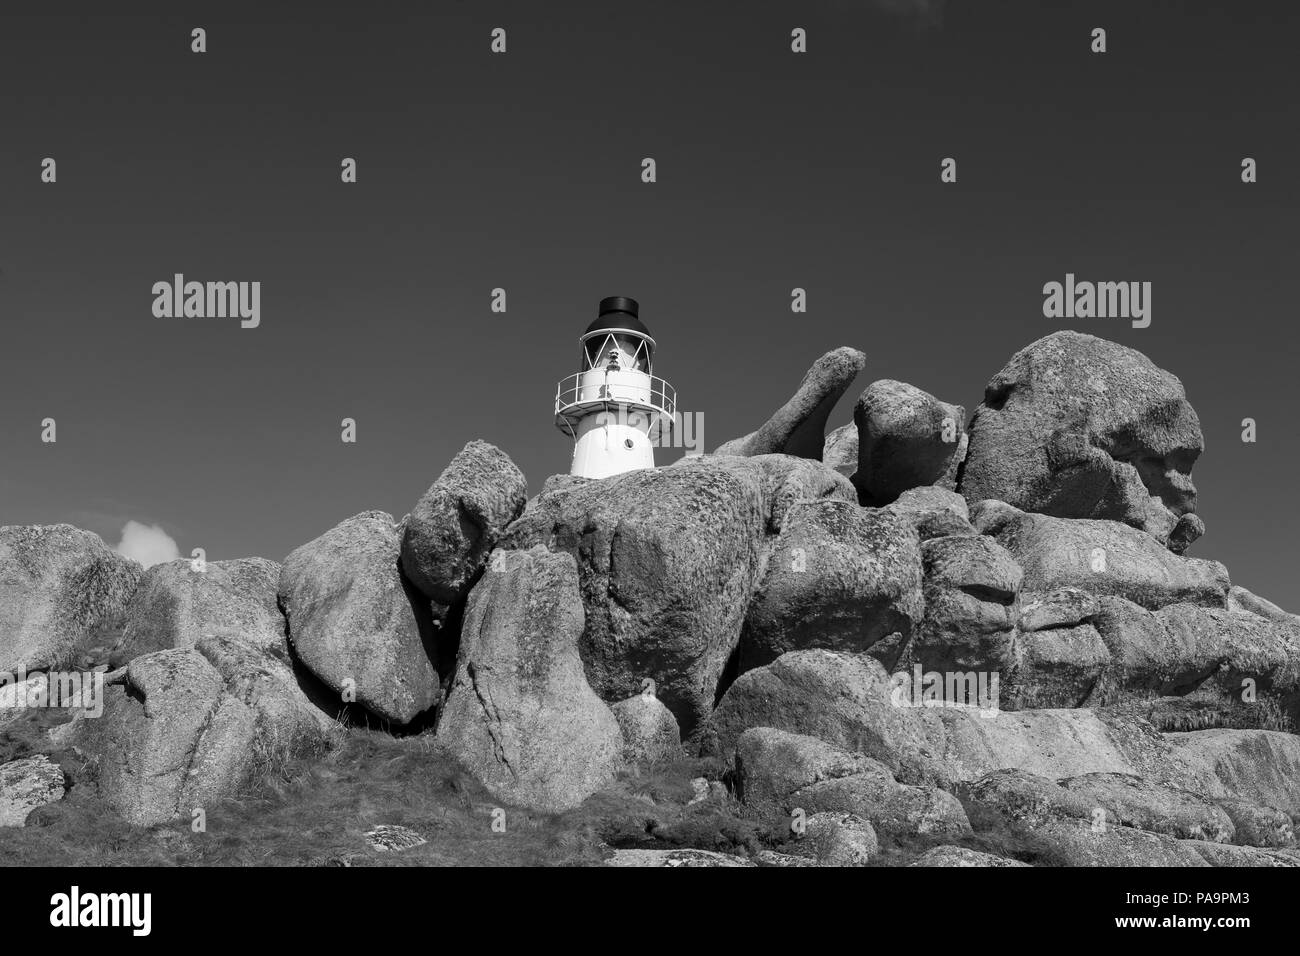 Peninnis Head lighthouse, St. Mary's, Isles of Scilly, UK: black and white version - Stock Image